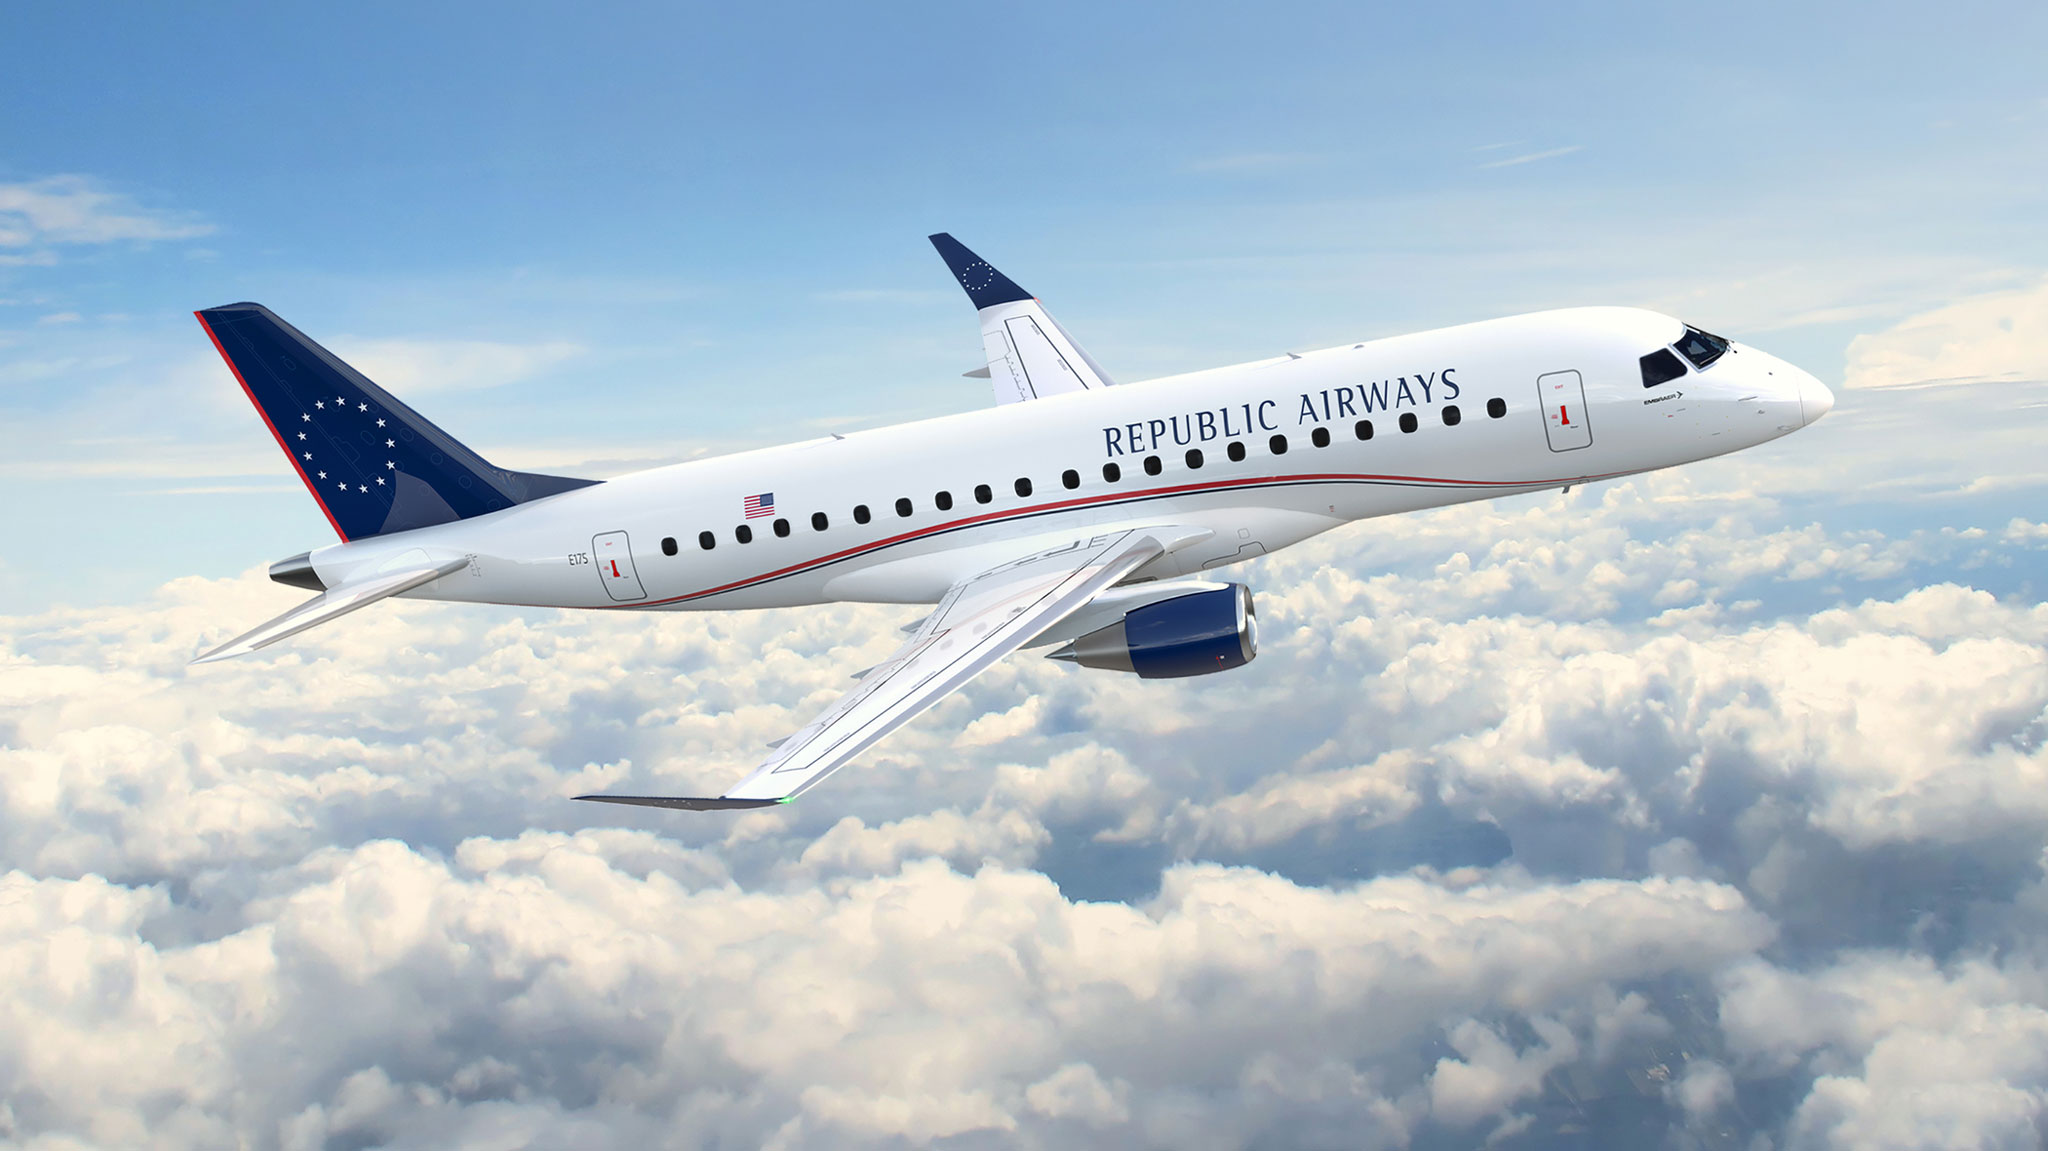 Republic Airways Cancellation Policy